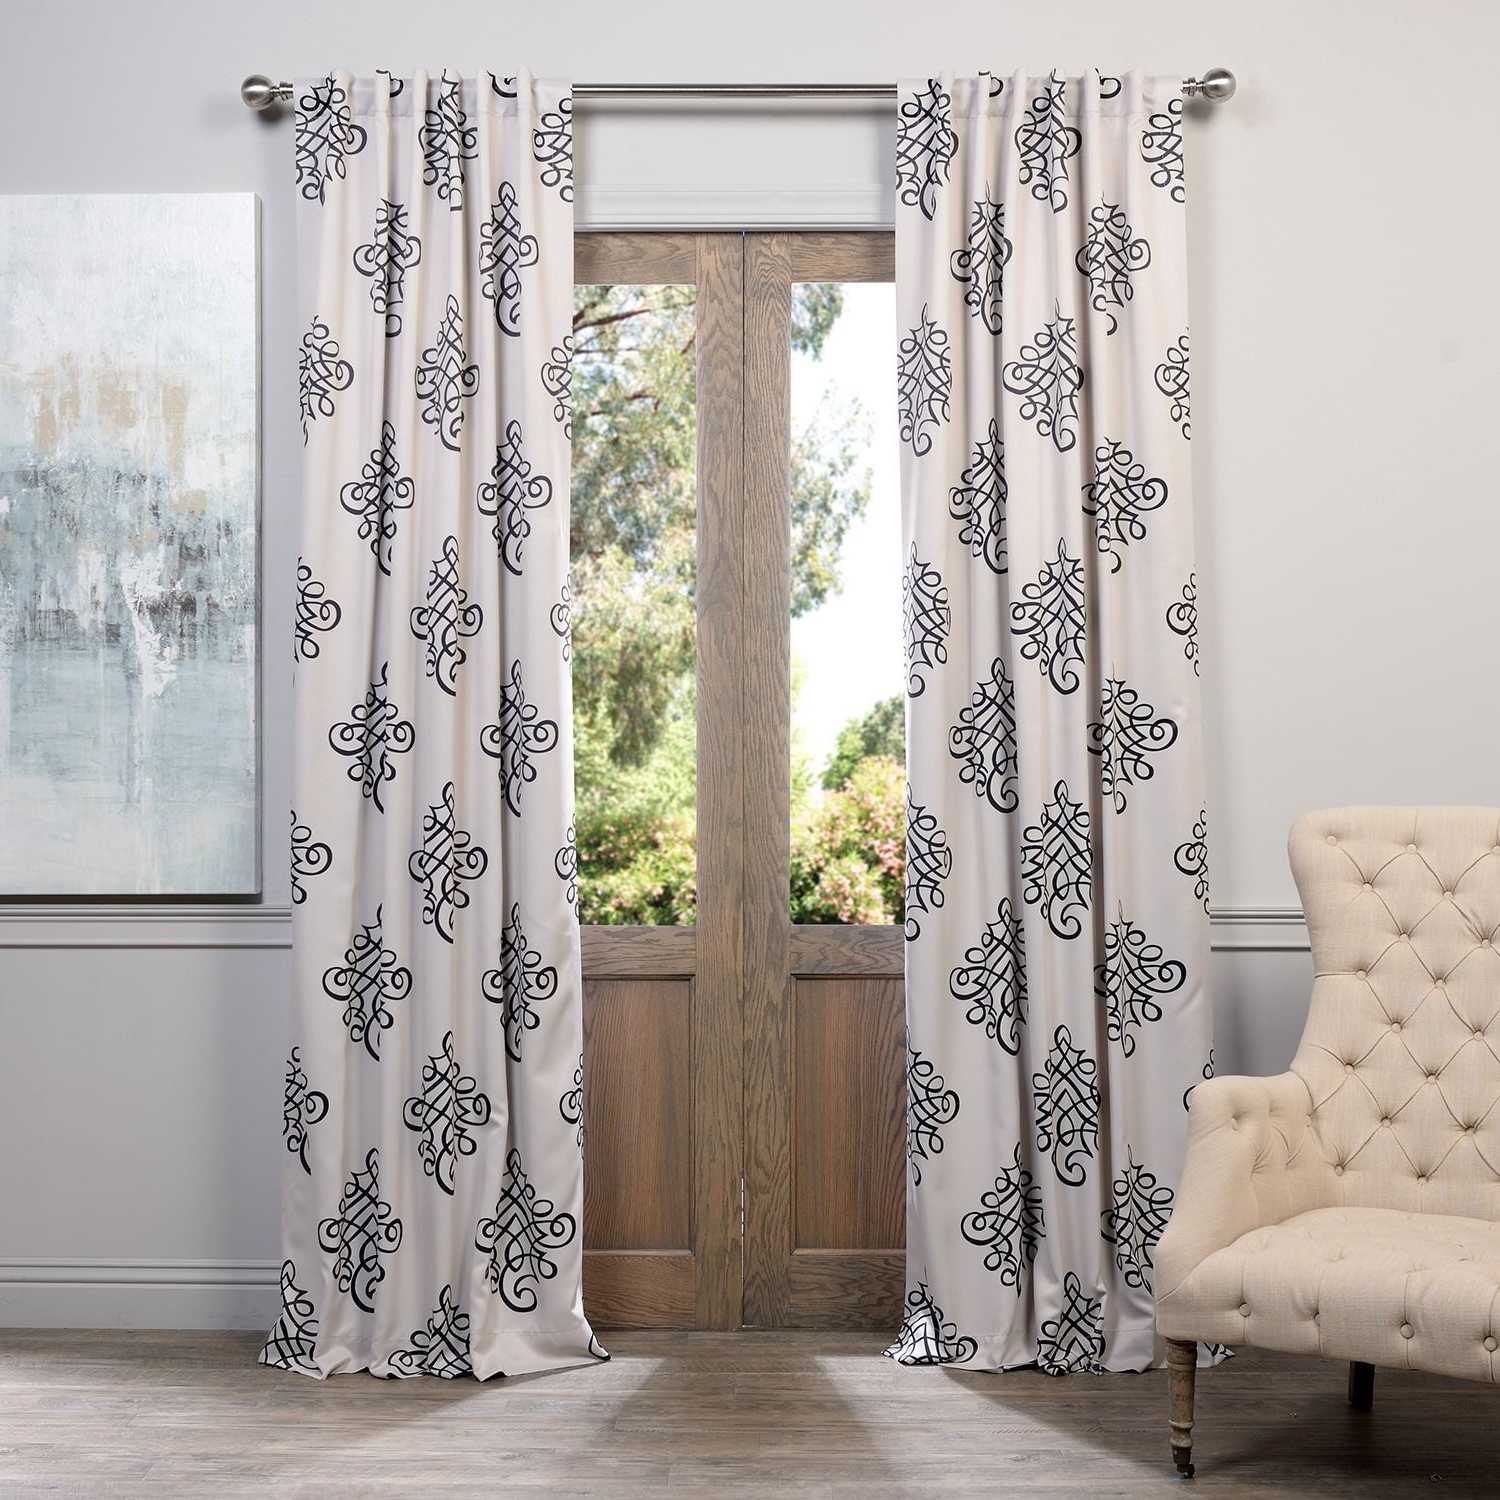 Widely Used Pastel Damask Printed Room Darkening Grommet Window Curtain Panel Pairs Within Exclusive Fabrics Tugra Printed Blackout Pole Pocket Curtain (View 10 of 20)